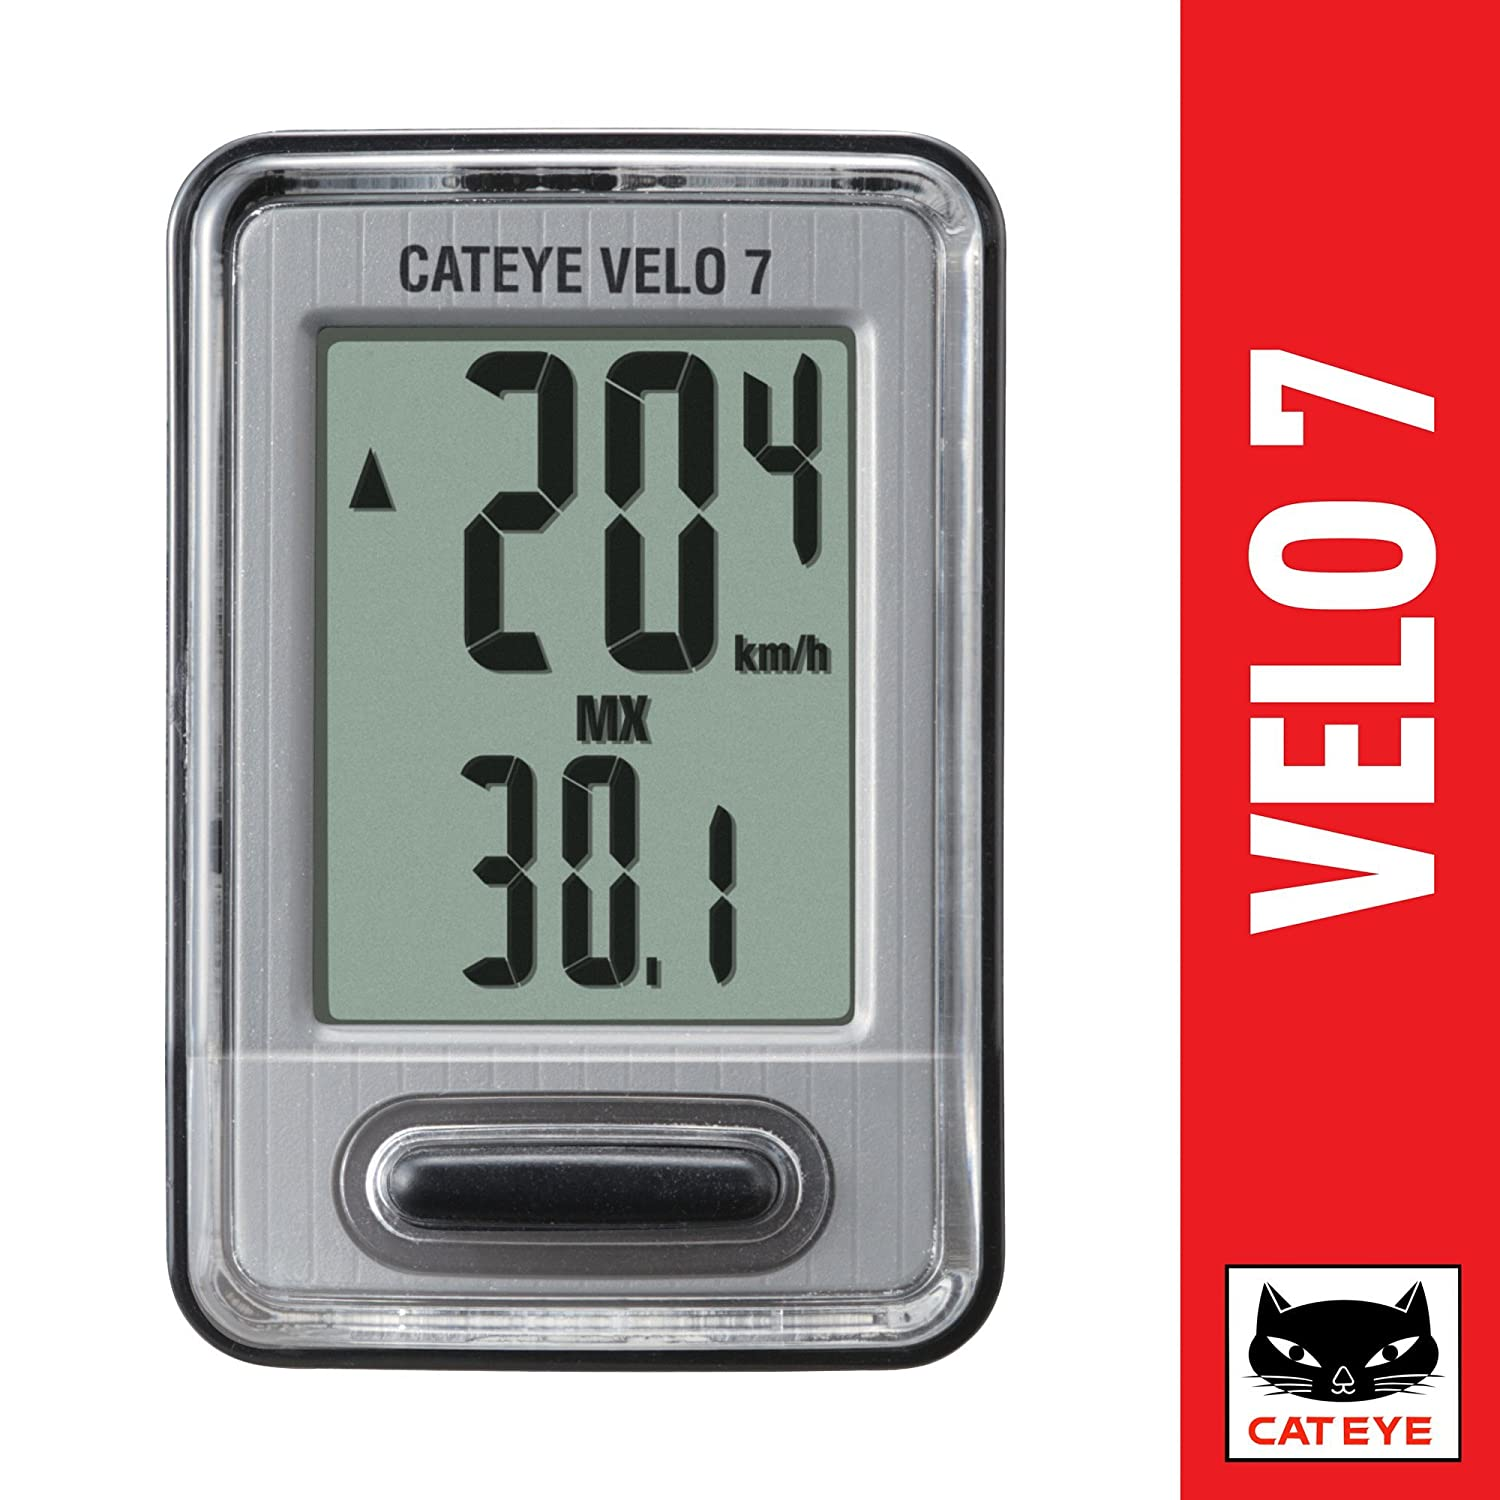 Buy Cateye Velo 7 Bicycle Computer CC-VL520 Online at Low Prices in India -  Amazon.in